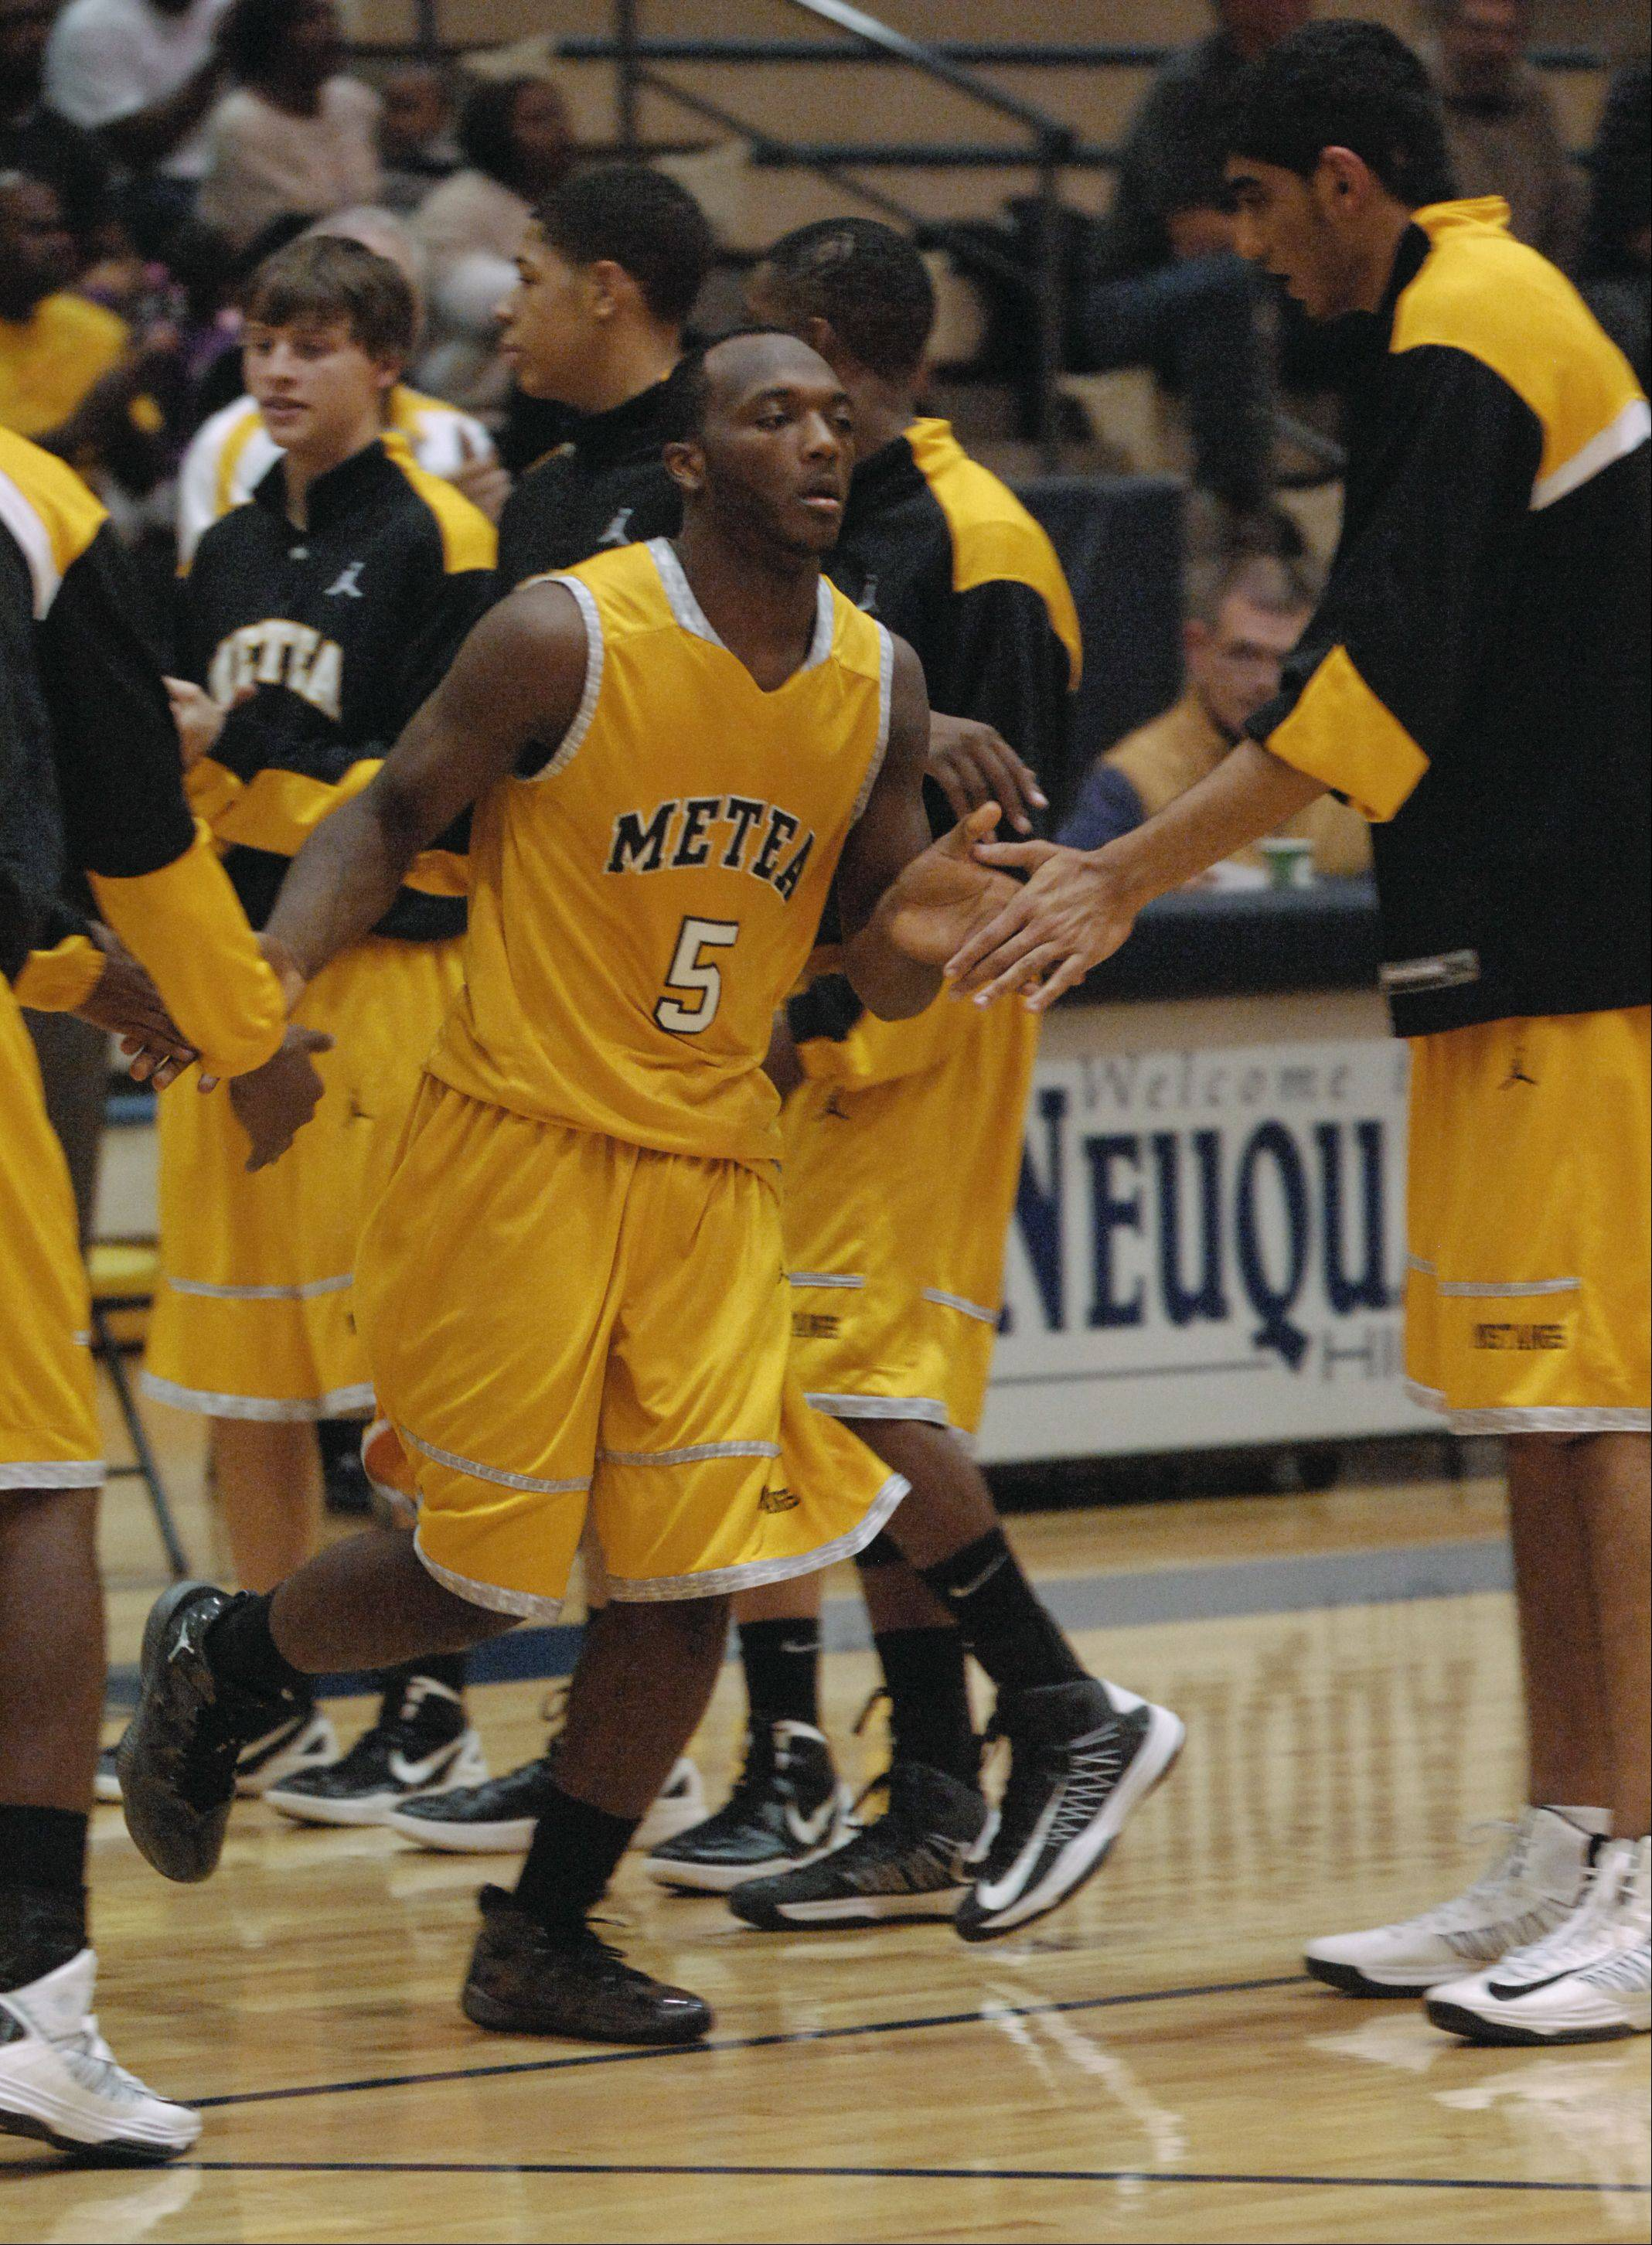 Metea Valley travelled to Neuqua Valley Thursday night for boys basketball.